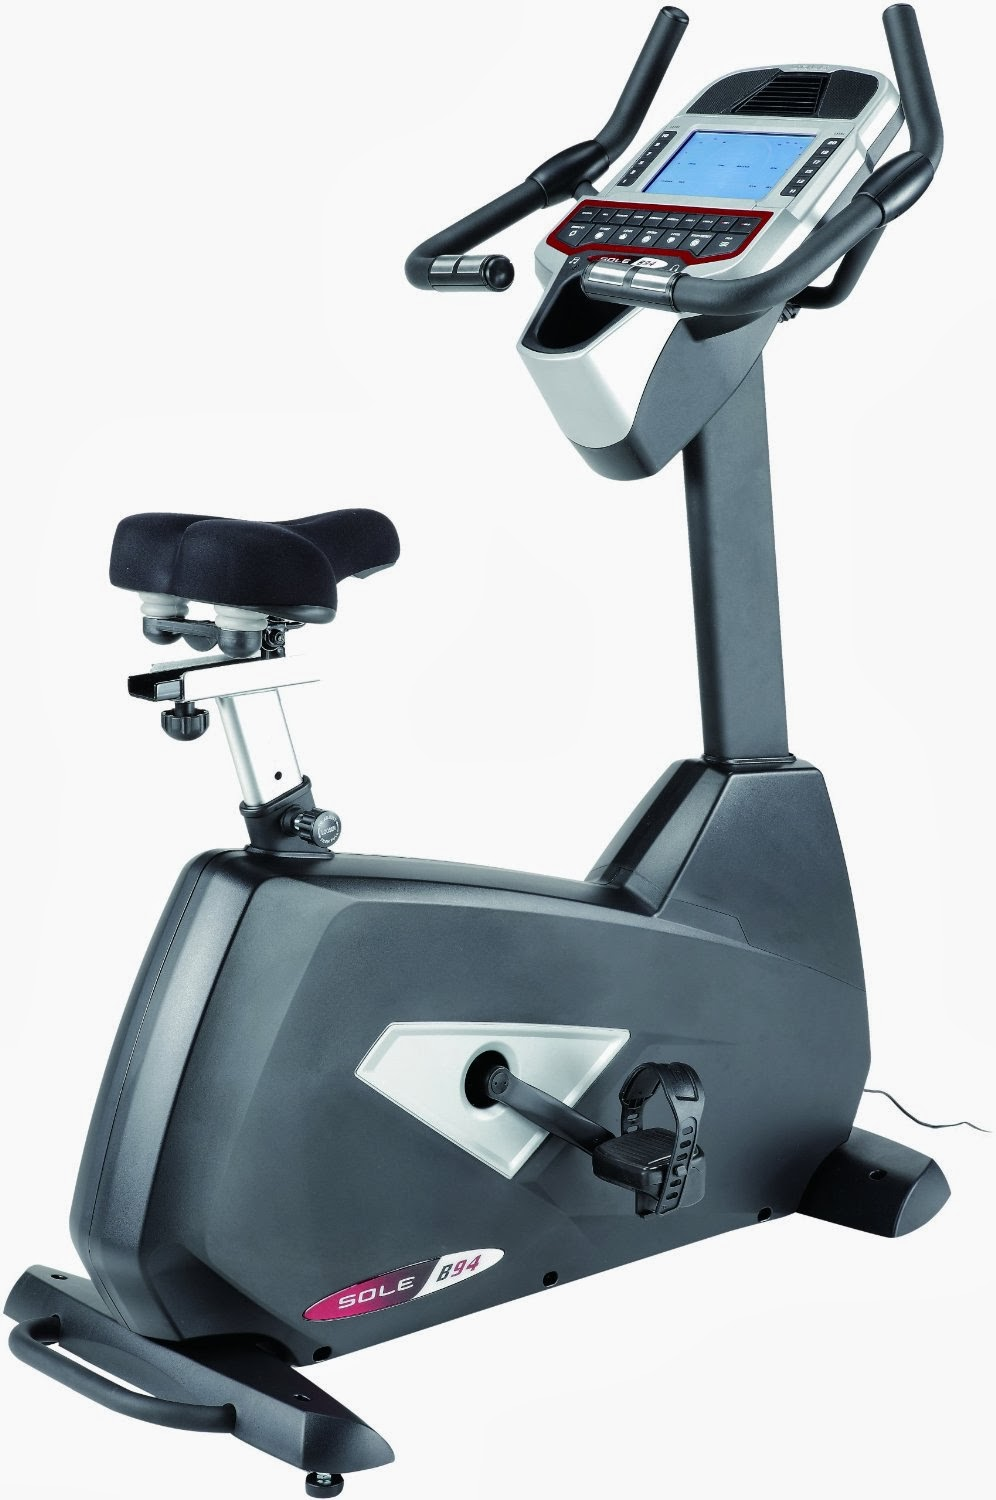 Get fit at home with the Sole Fitness B94 Upright Exercise Bike, sturdy and ergonomically designed exercise bike with 10 programs